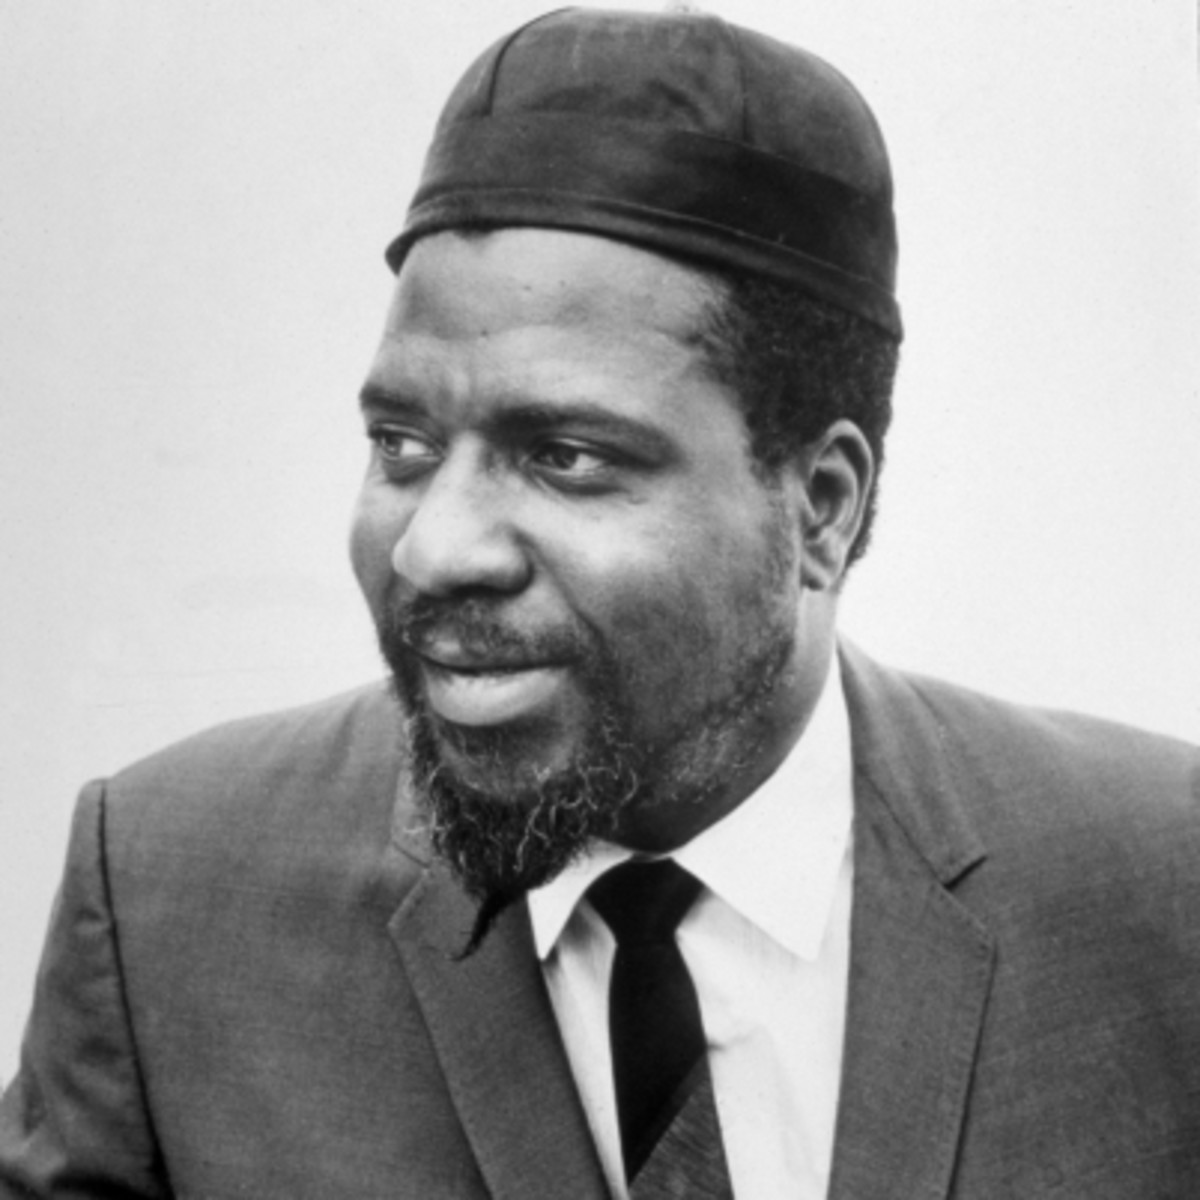 Thelonious Monk - Songwriter, Pianist - Biography